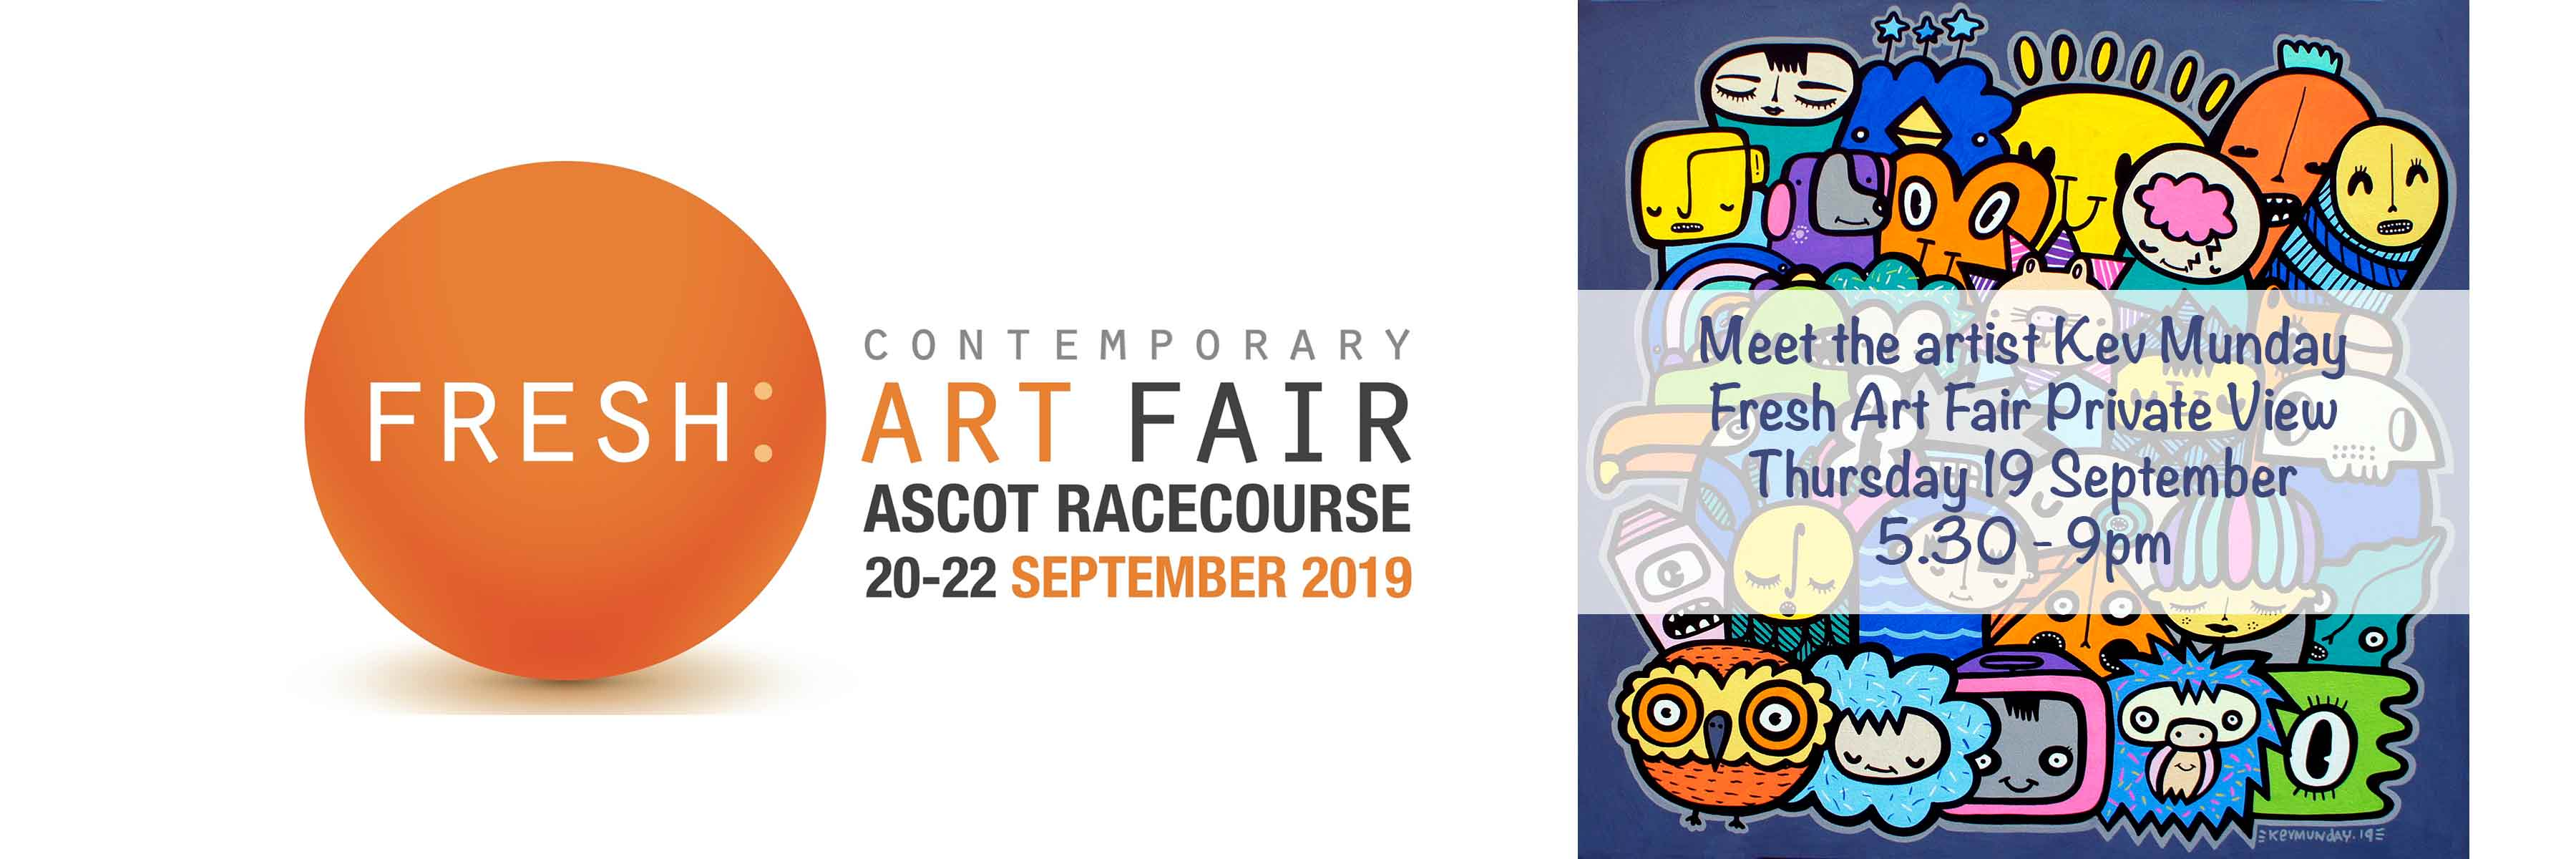 Fresh Art Fair Ascot